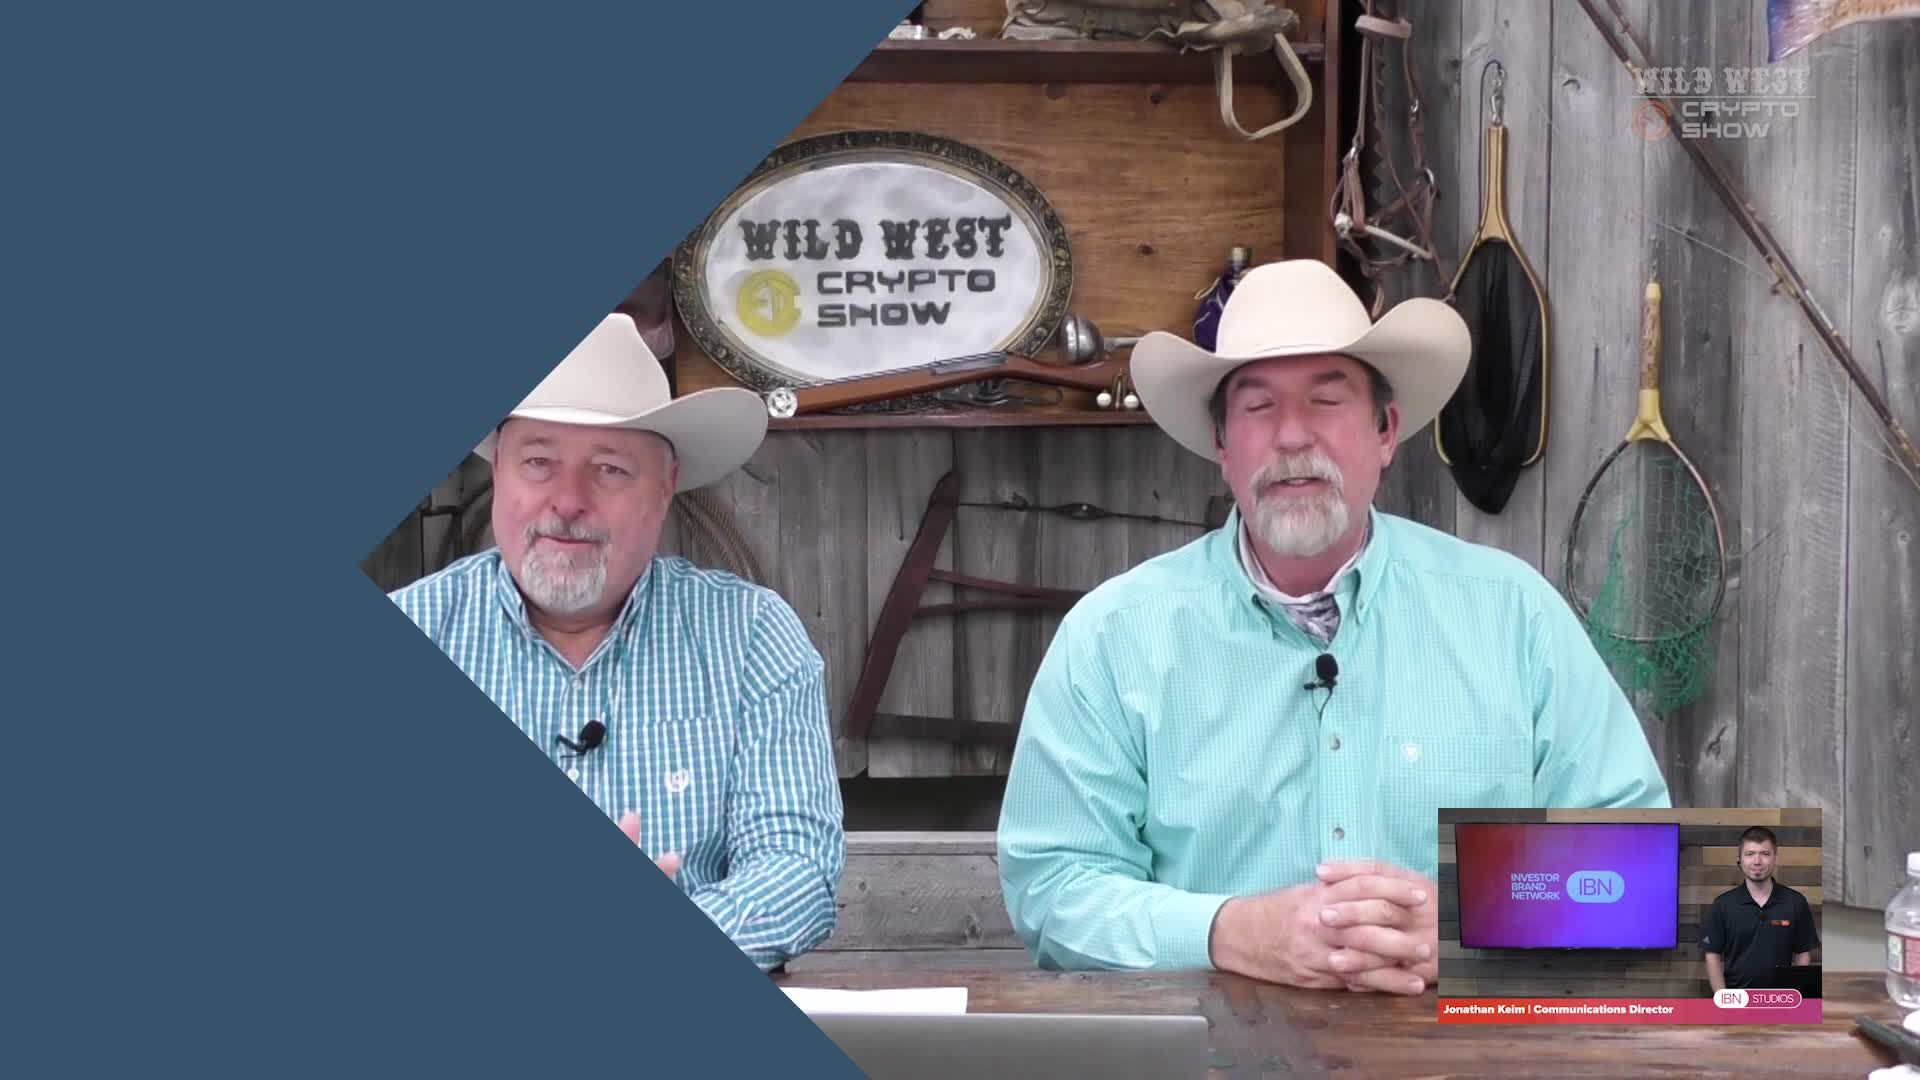 CryptoCurrencyWire Videos-The Wild West Crypto Show Hosts Crypto Crusaders Dirk Leuth and Ronnie Moas | CryptoCurrencyWire on The Wild West Crypto Show | Episode 127